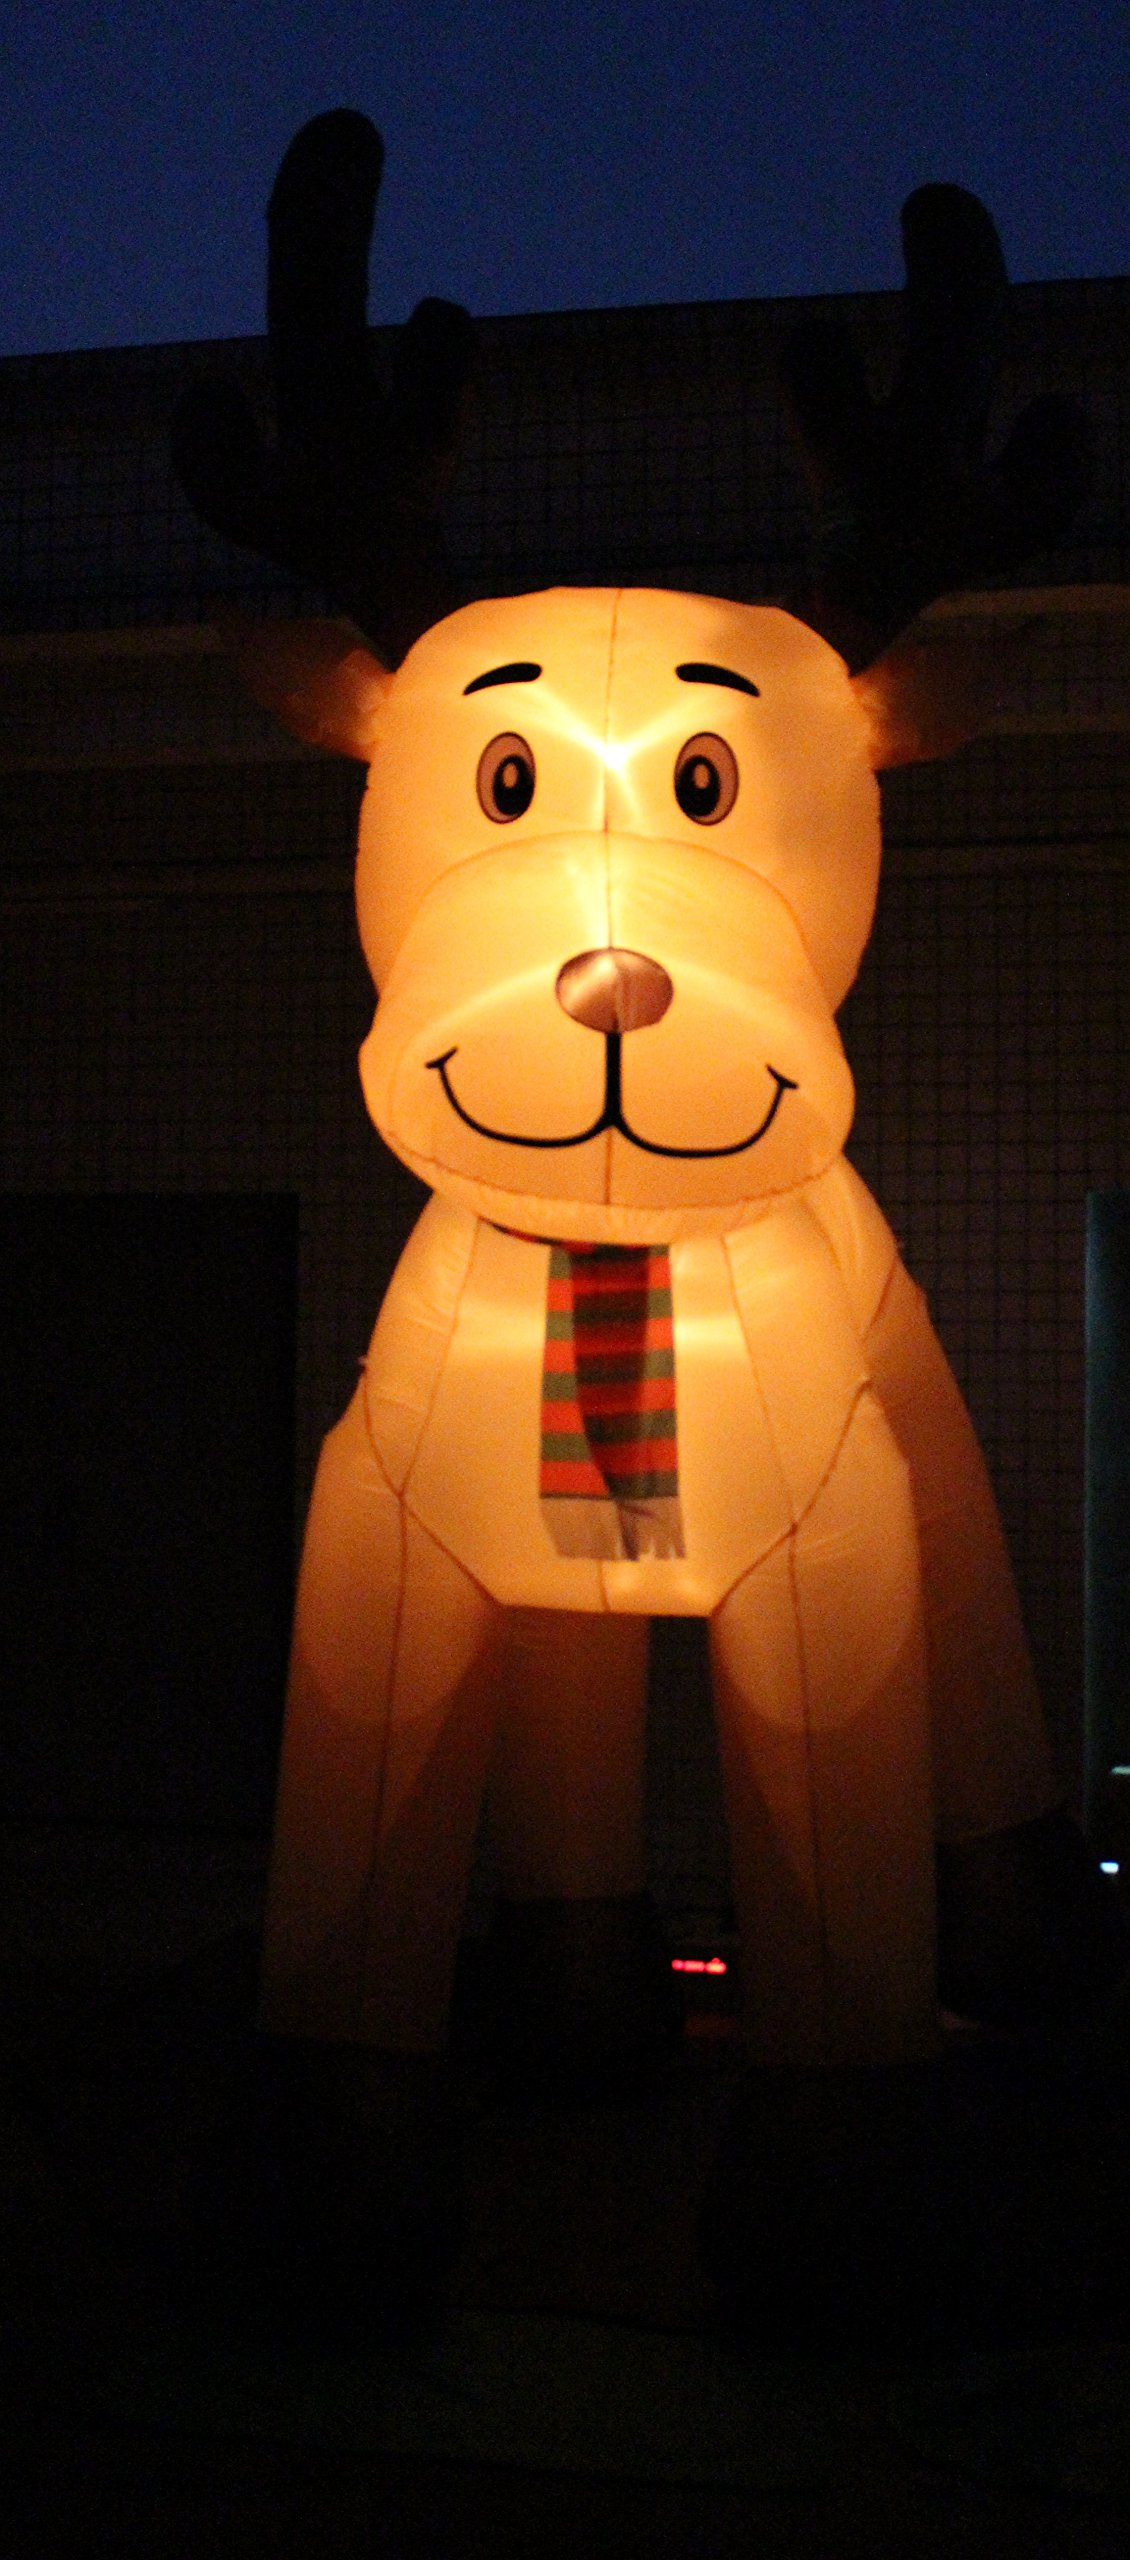 JUMBO 15 Foot Tall Christmas Inflatable Reindeer Outdoor Yard Decoration by BZB Goods (Image #4)